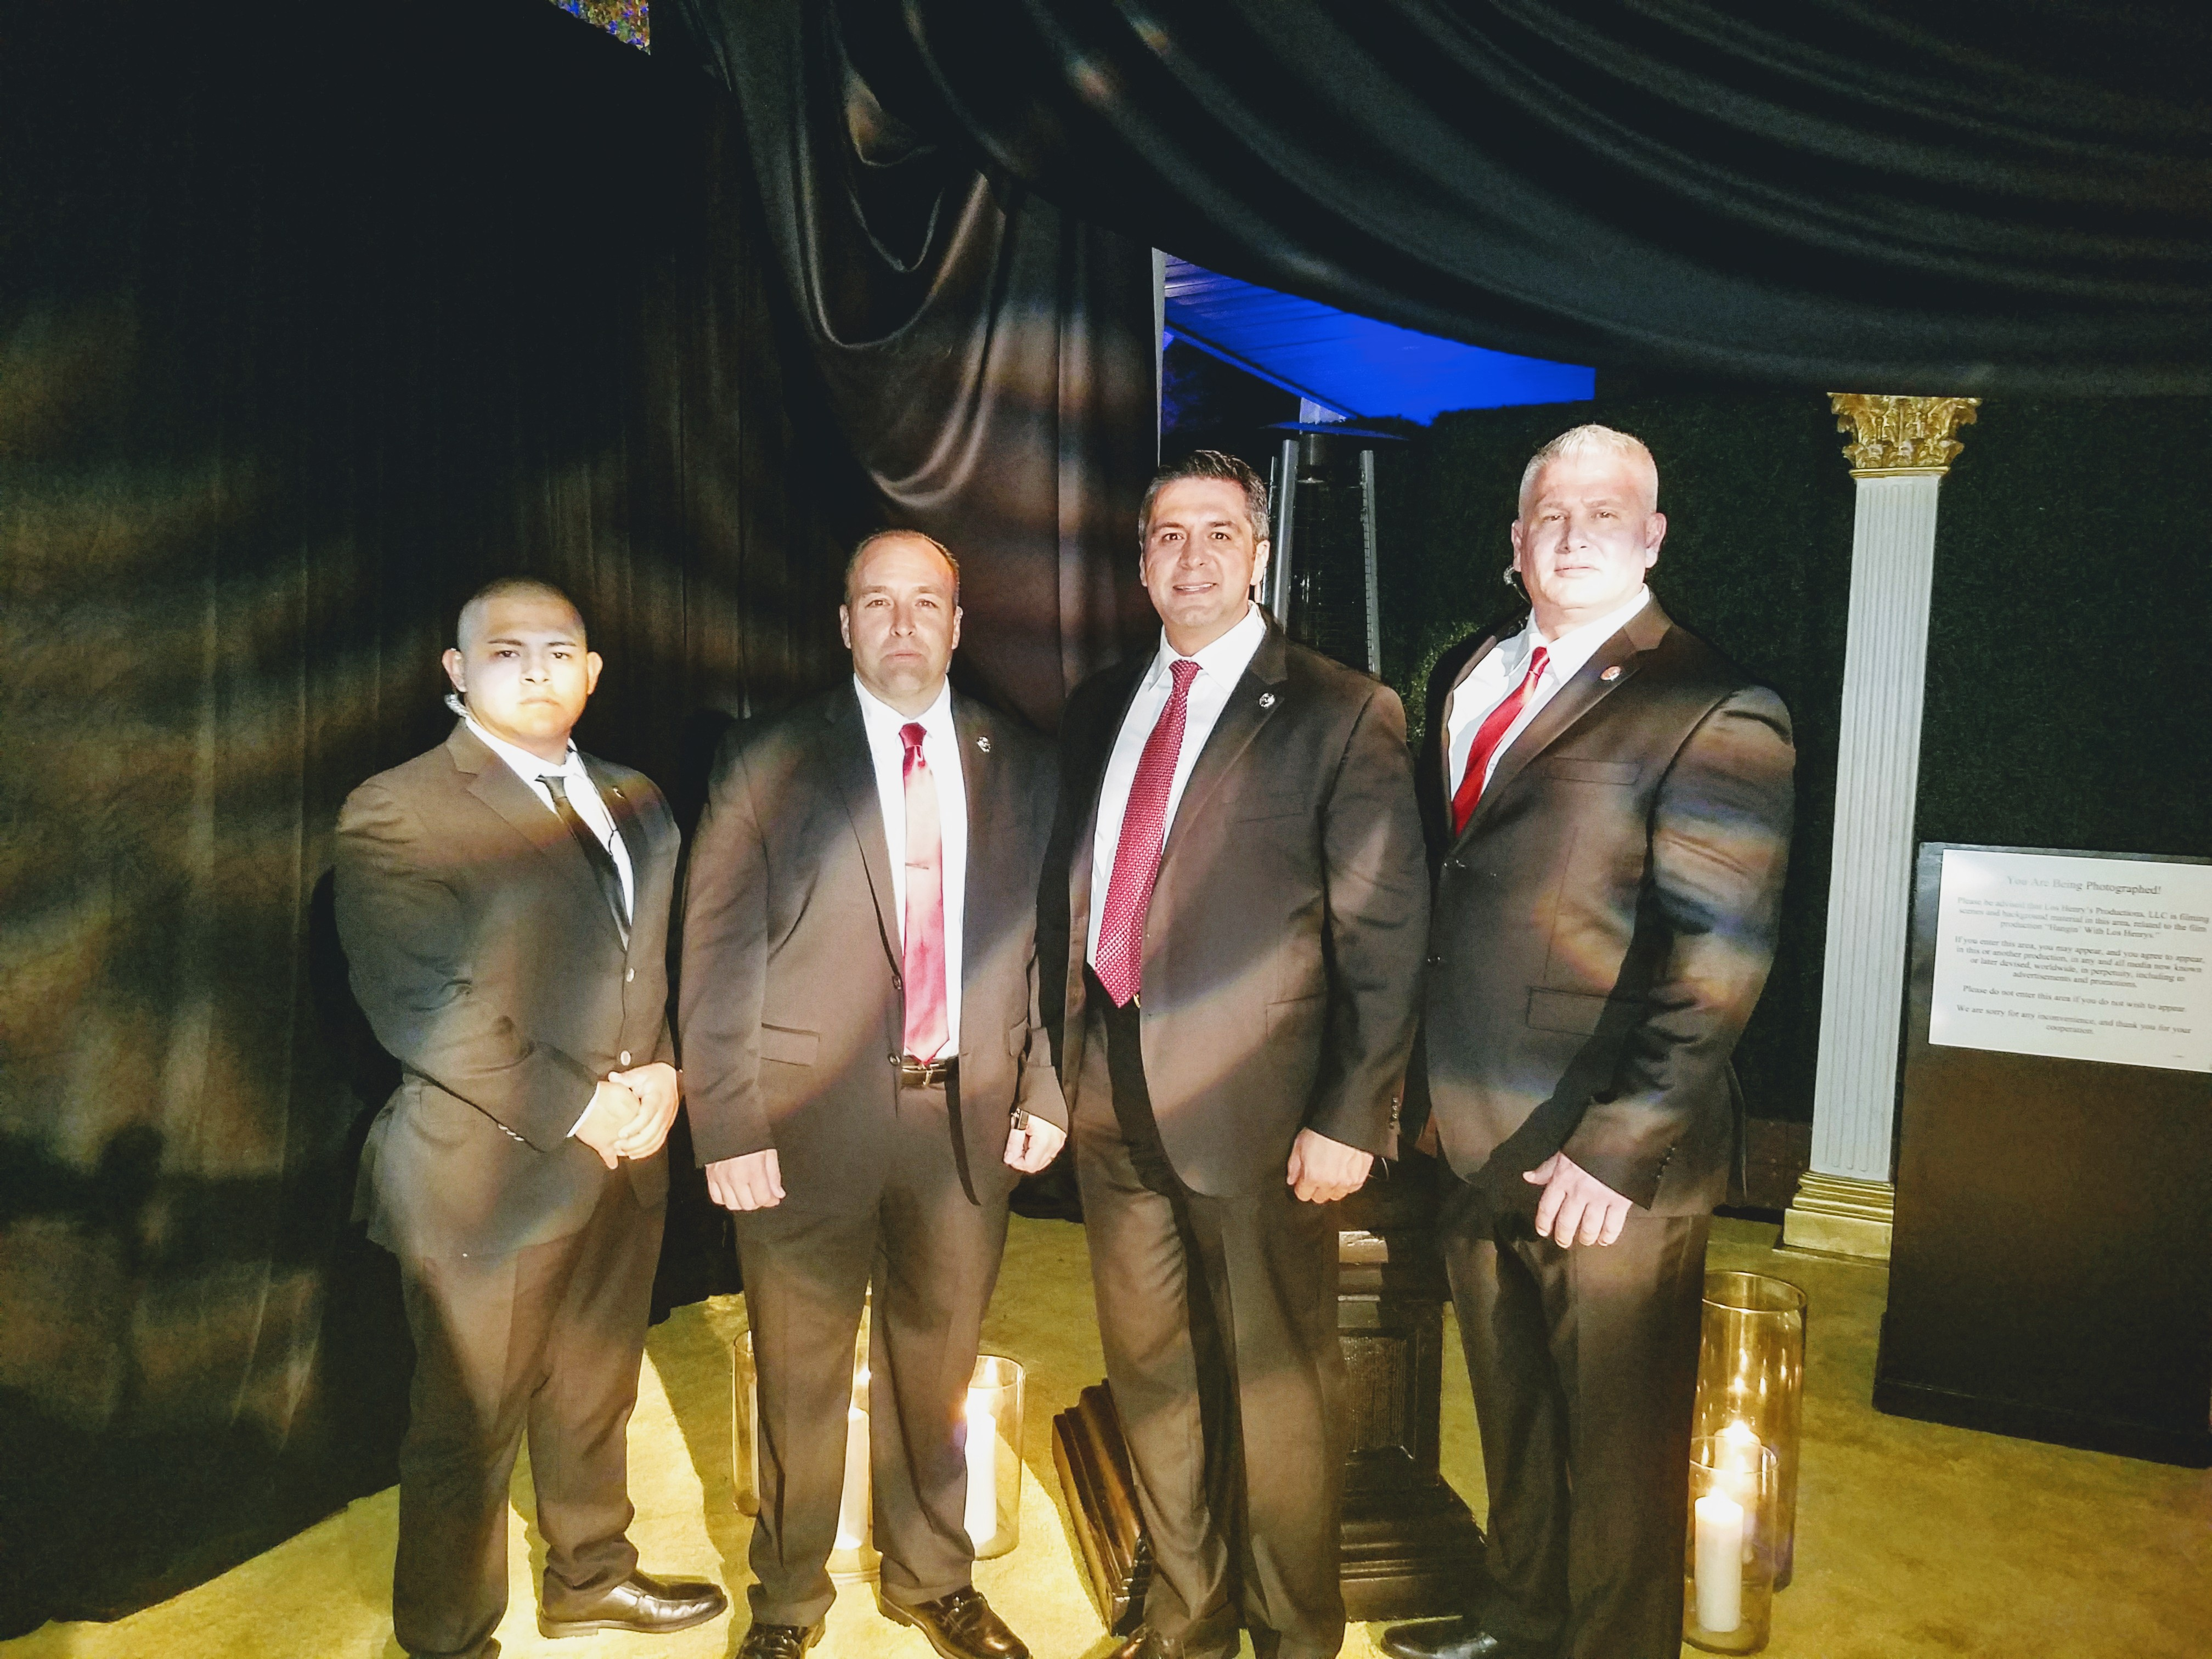 C & F SECURITY/LEVEL ONE PROTECTION